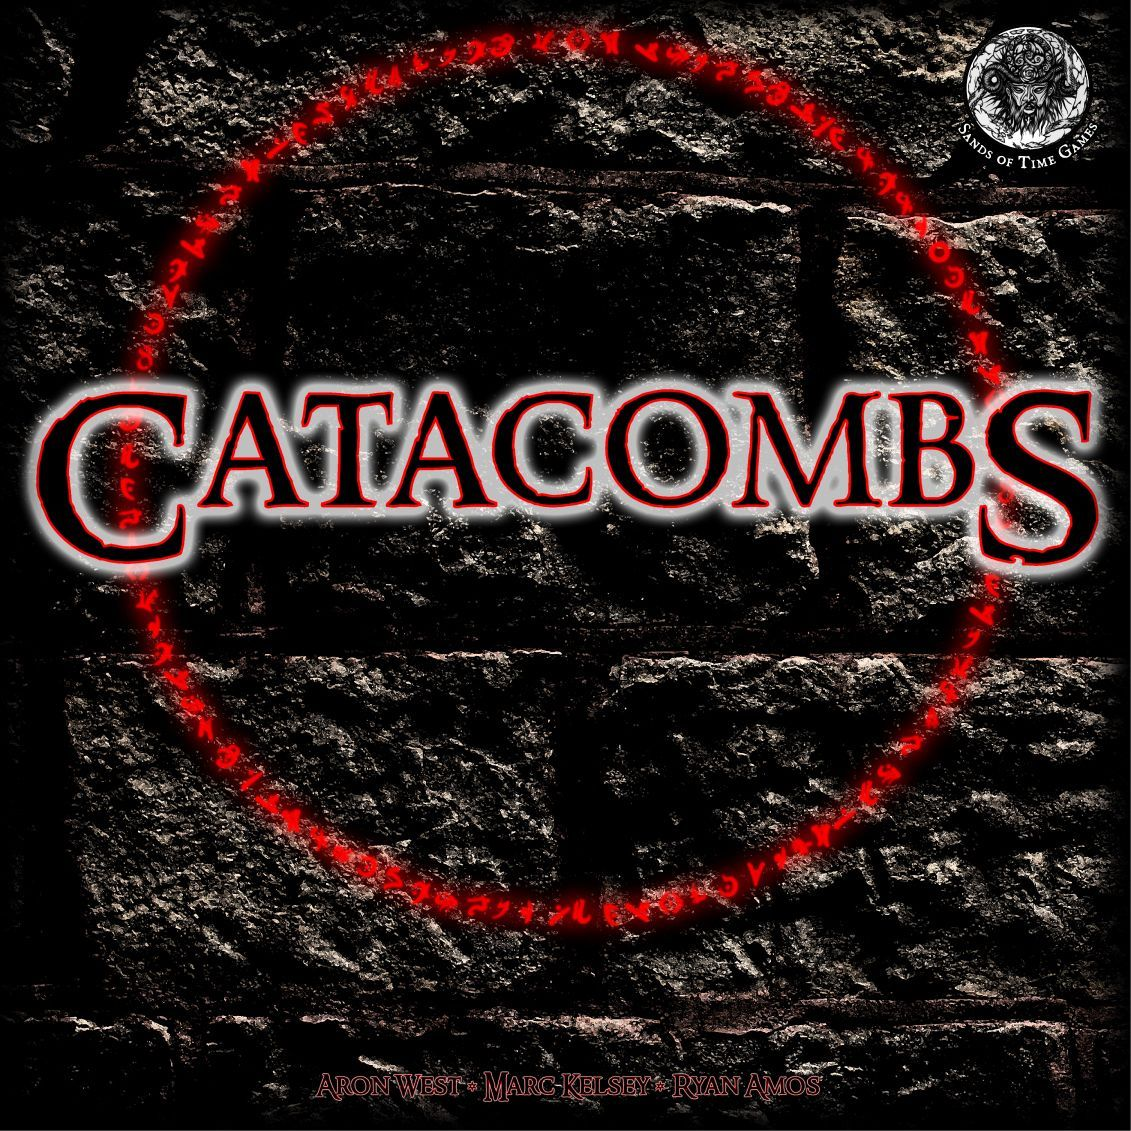 Main image for Catacombs